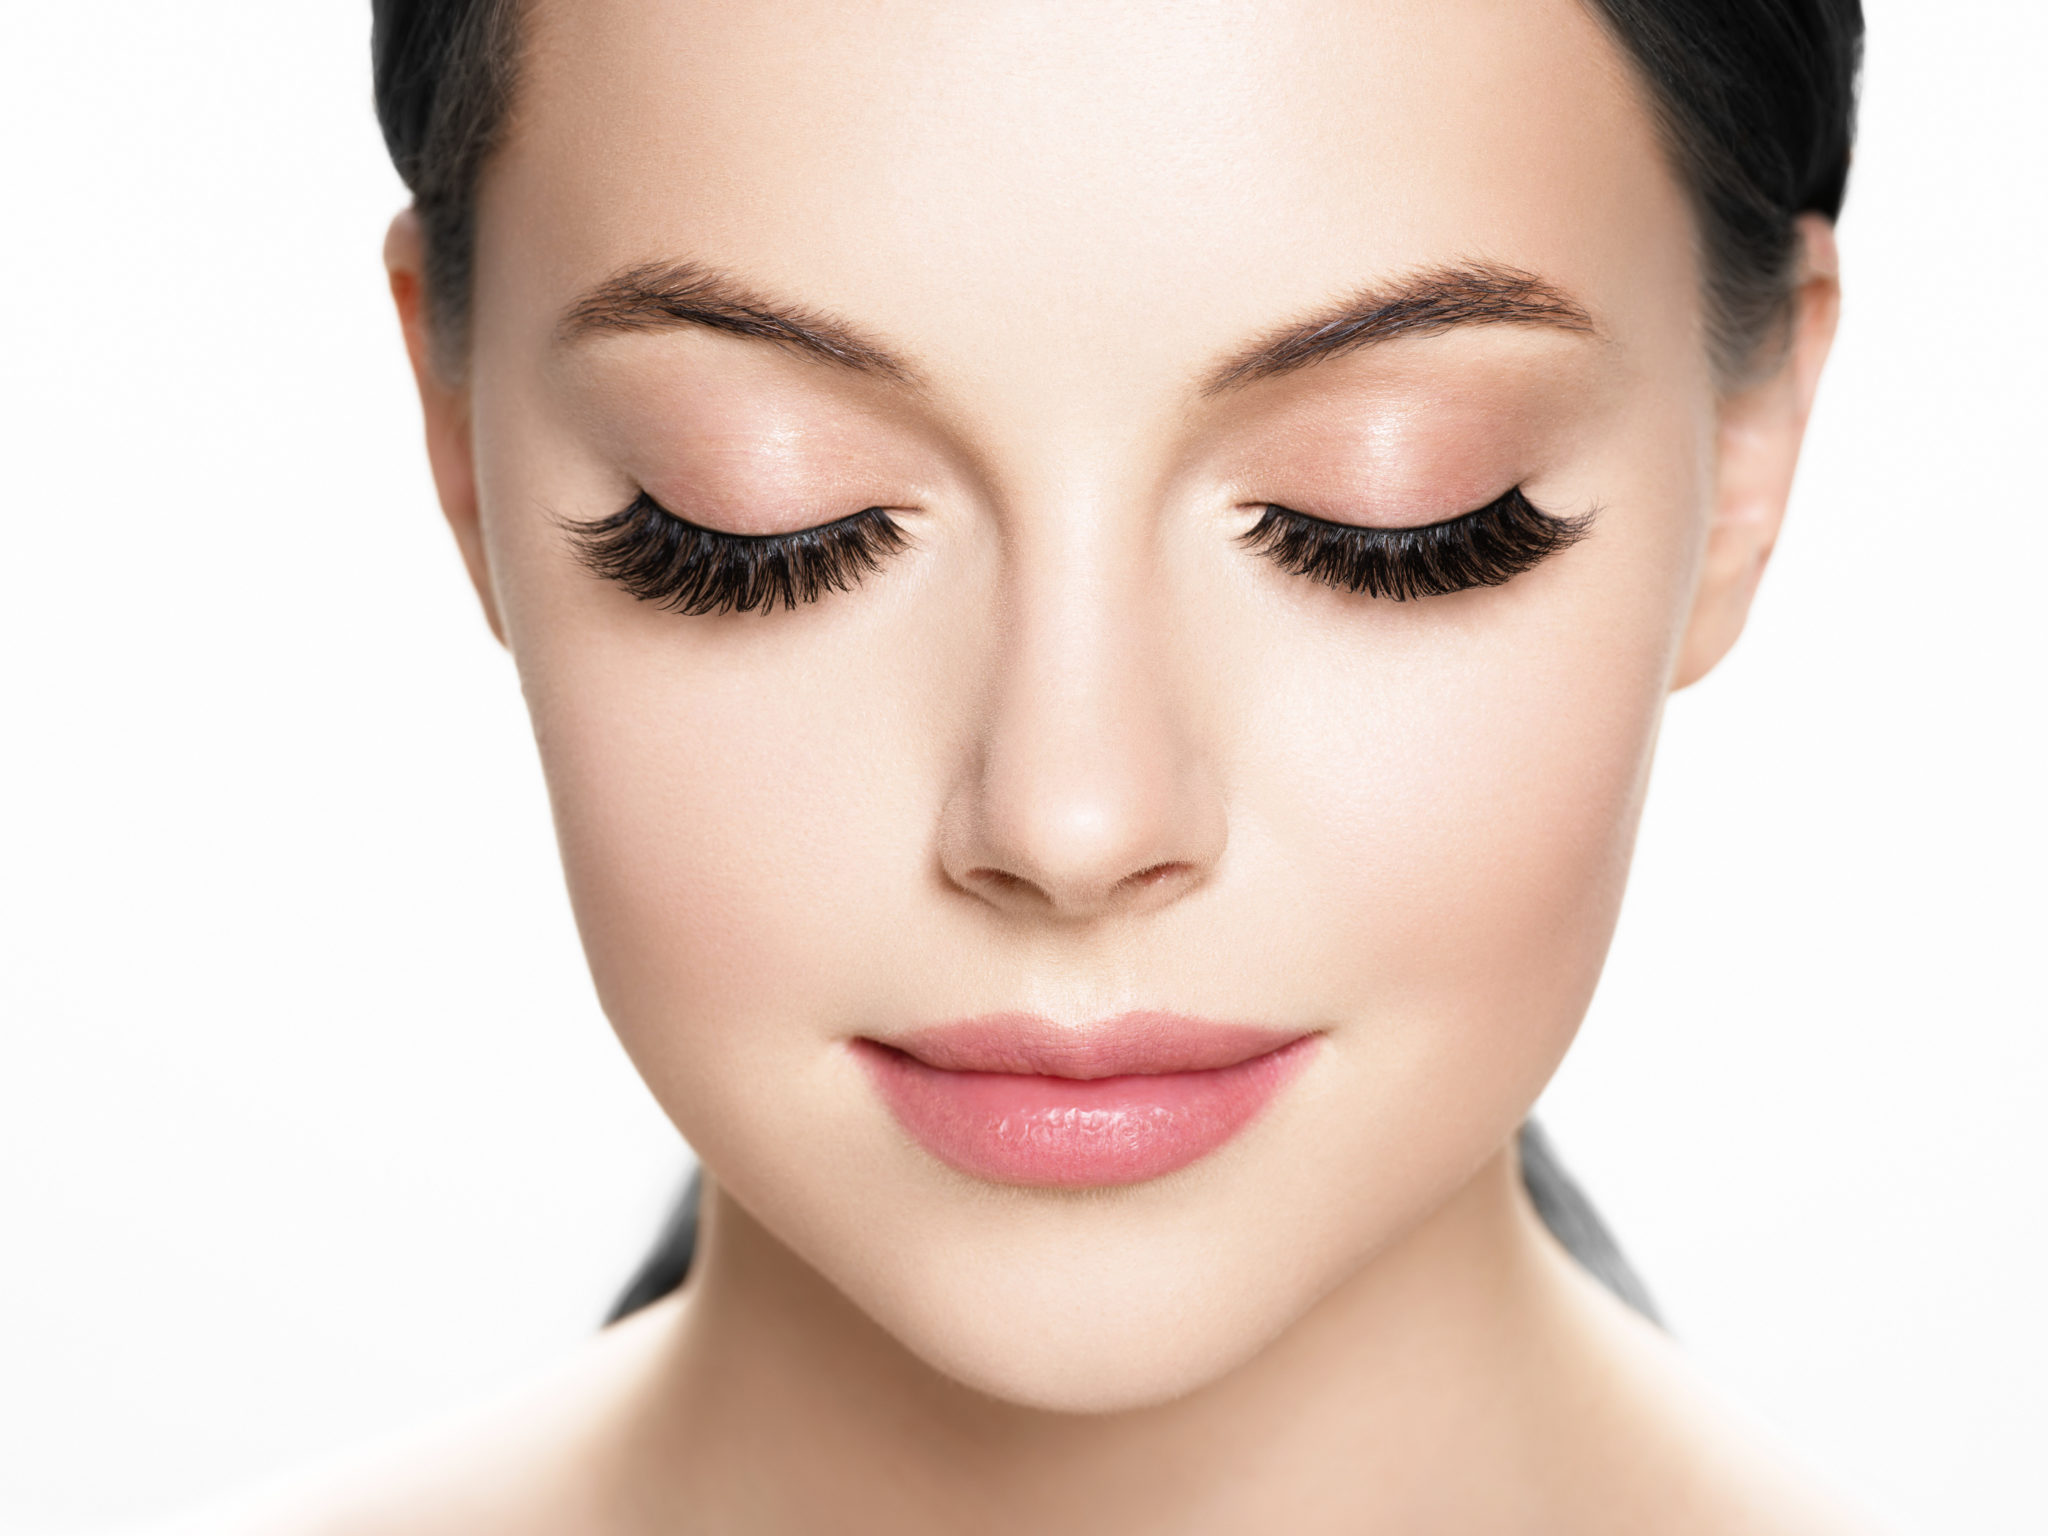 8f0fec15739 Within our studios we utilize premium silk and faux mink lashes for our  eyelash extension services.